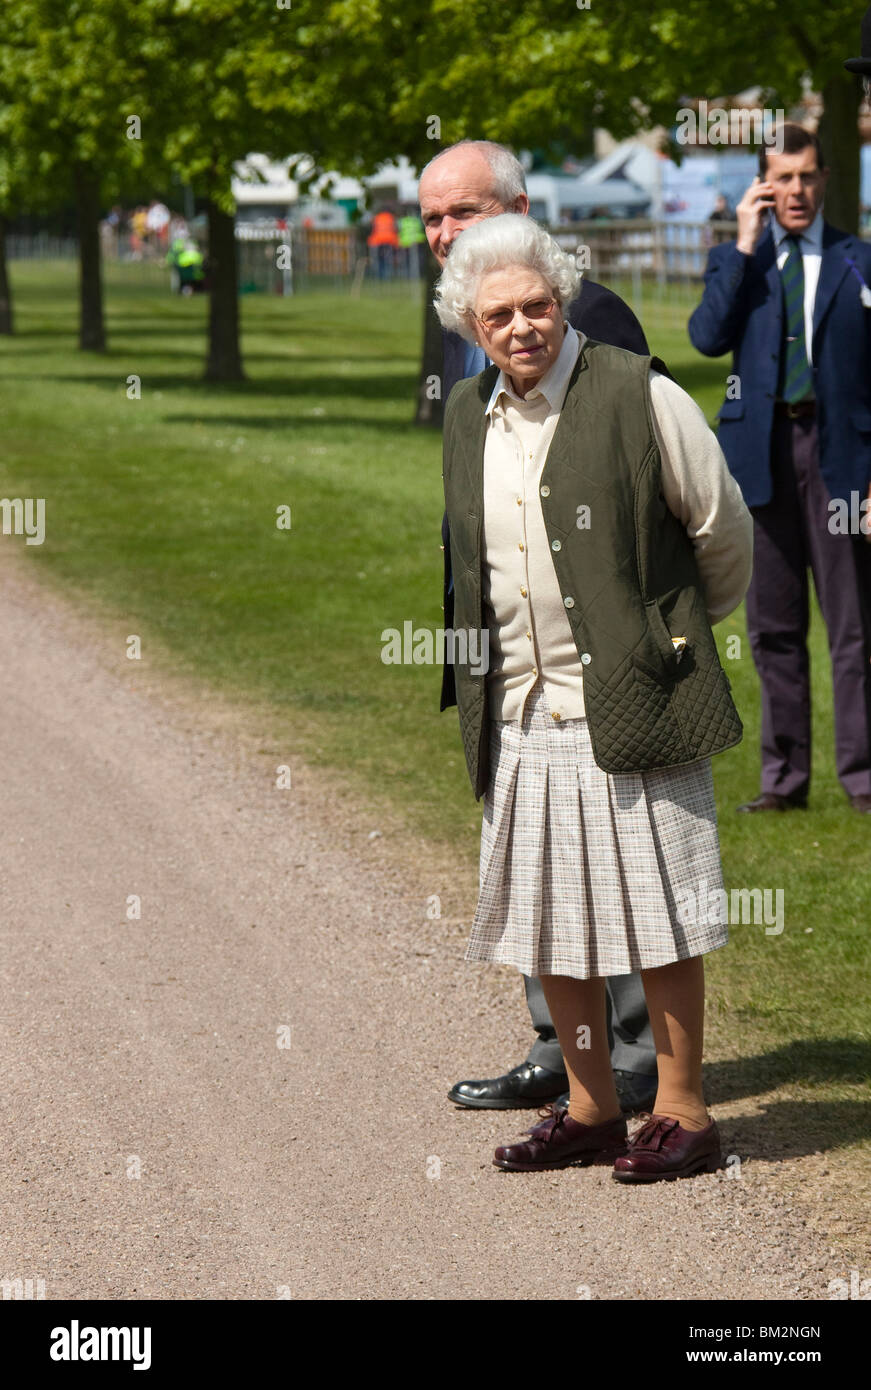 Britain 39 S Queen Elizabeth At The Royal Windsor Horse Show